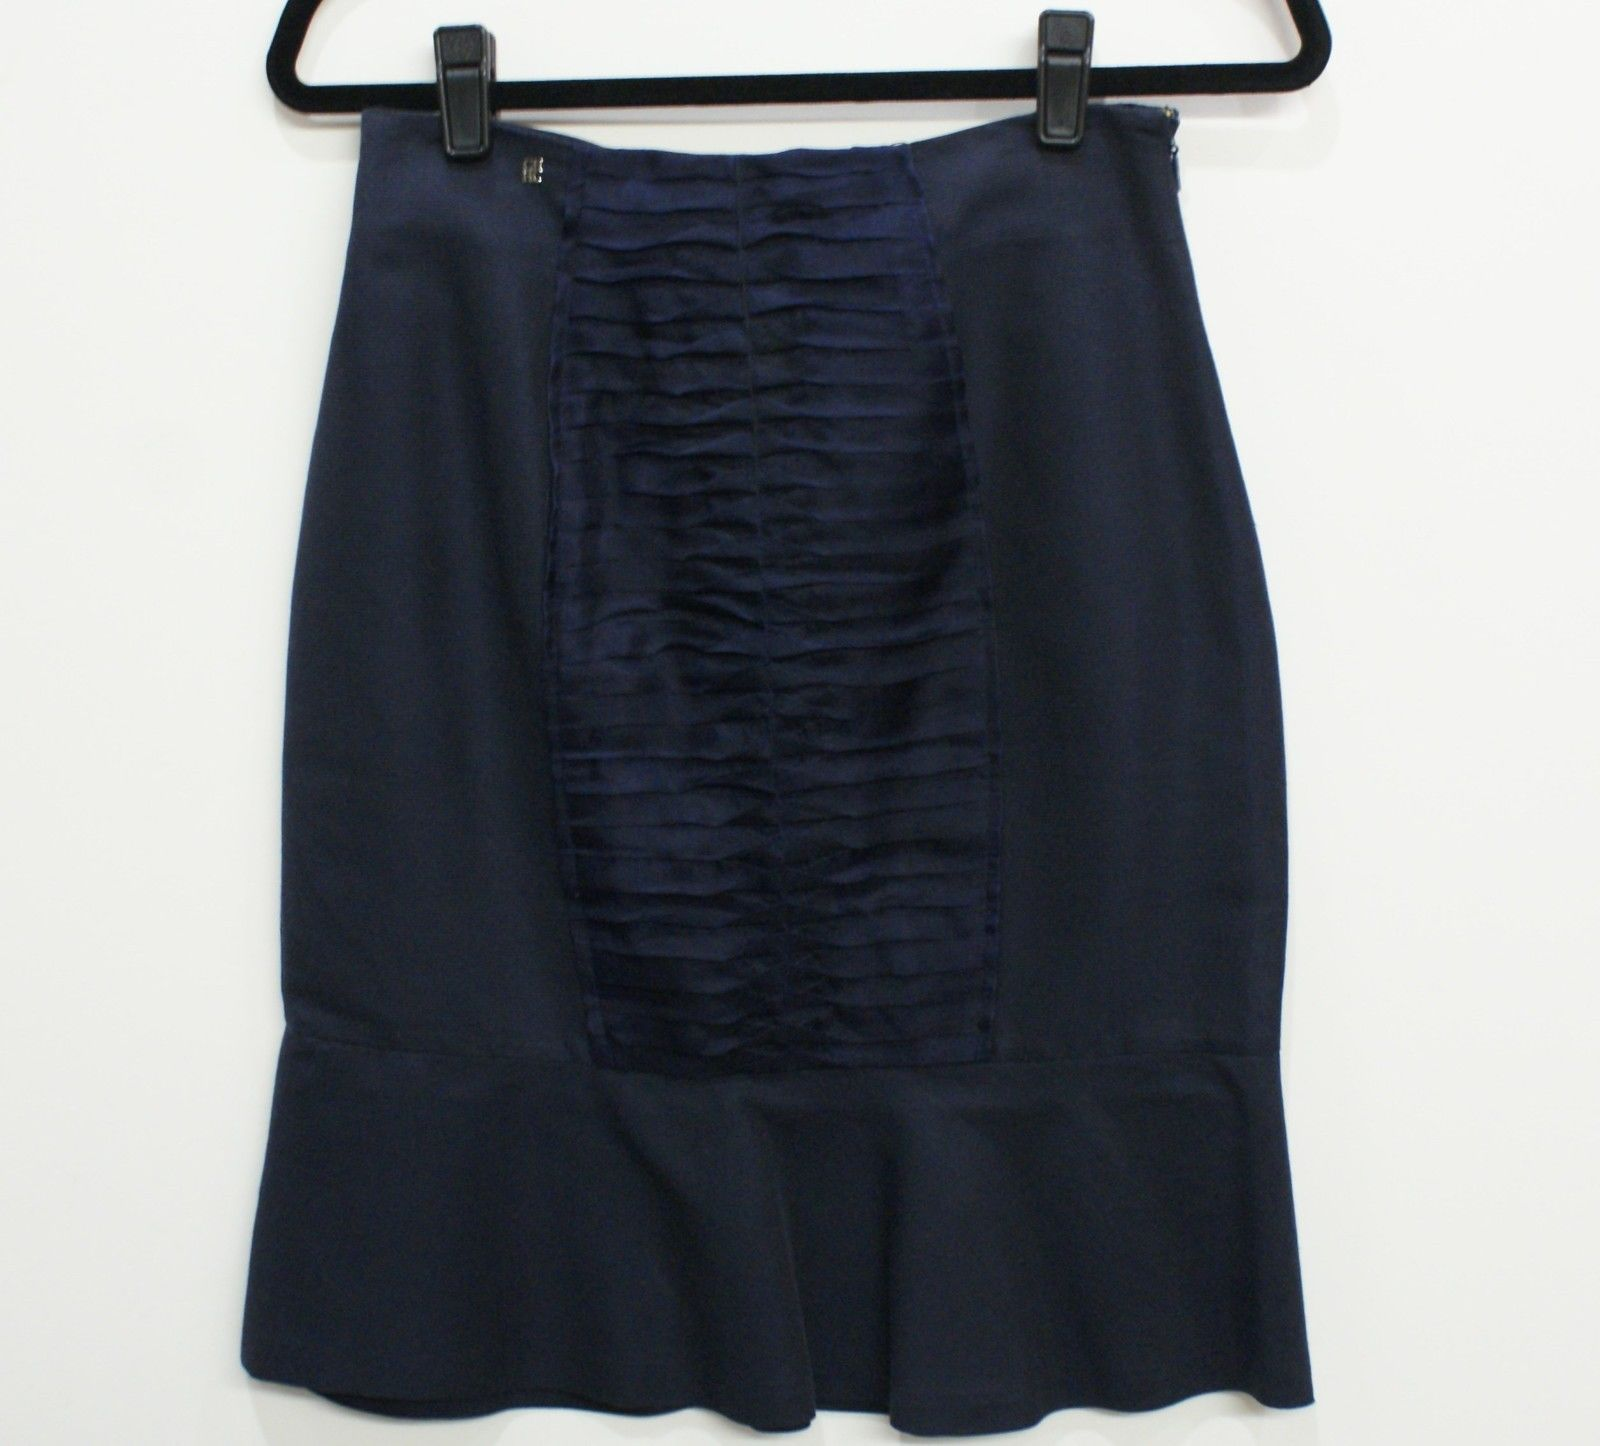 CH CAROLINA HERRERA Navy Skirt with Pleated Detail Sz 2 $400 - $103.26